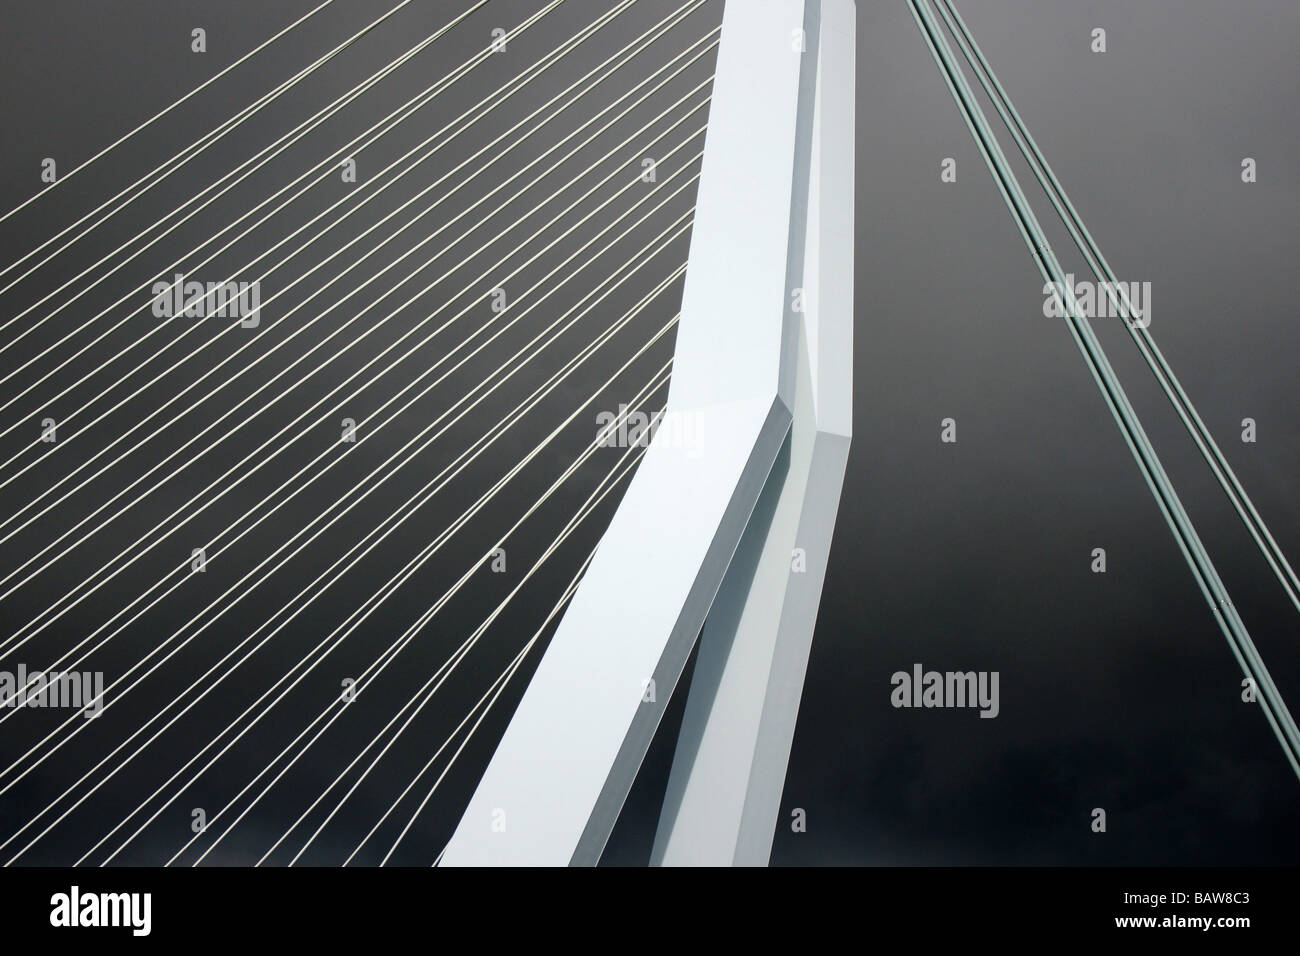 Pylon and ropes of Erasmus Bridge in Rotterdam, Netherlands, stylised abstraction over dark dramatic sky. - Stock Image